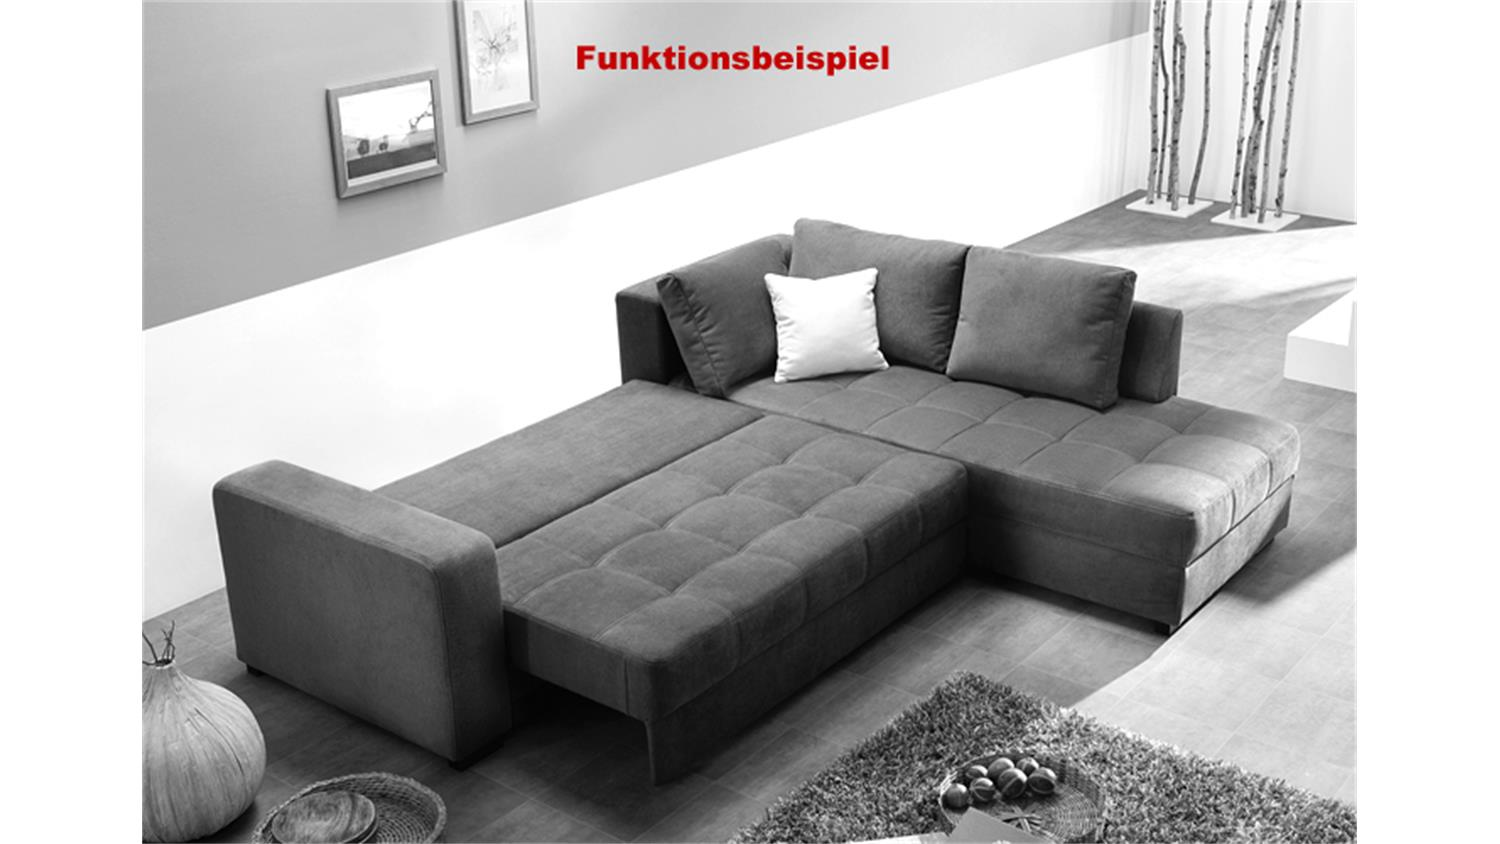 ecksofa aura microfaser grau mit g stebett und bettkasten. Black Bedroom Furniture Sets. Home Design Ideas